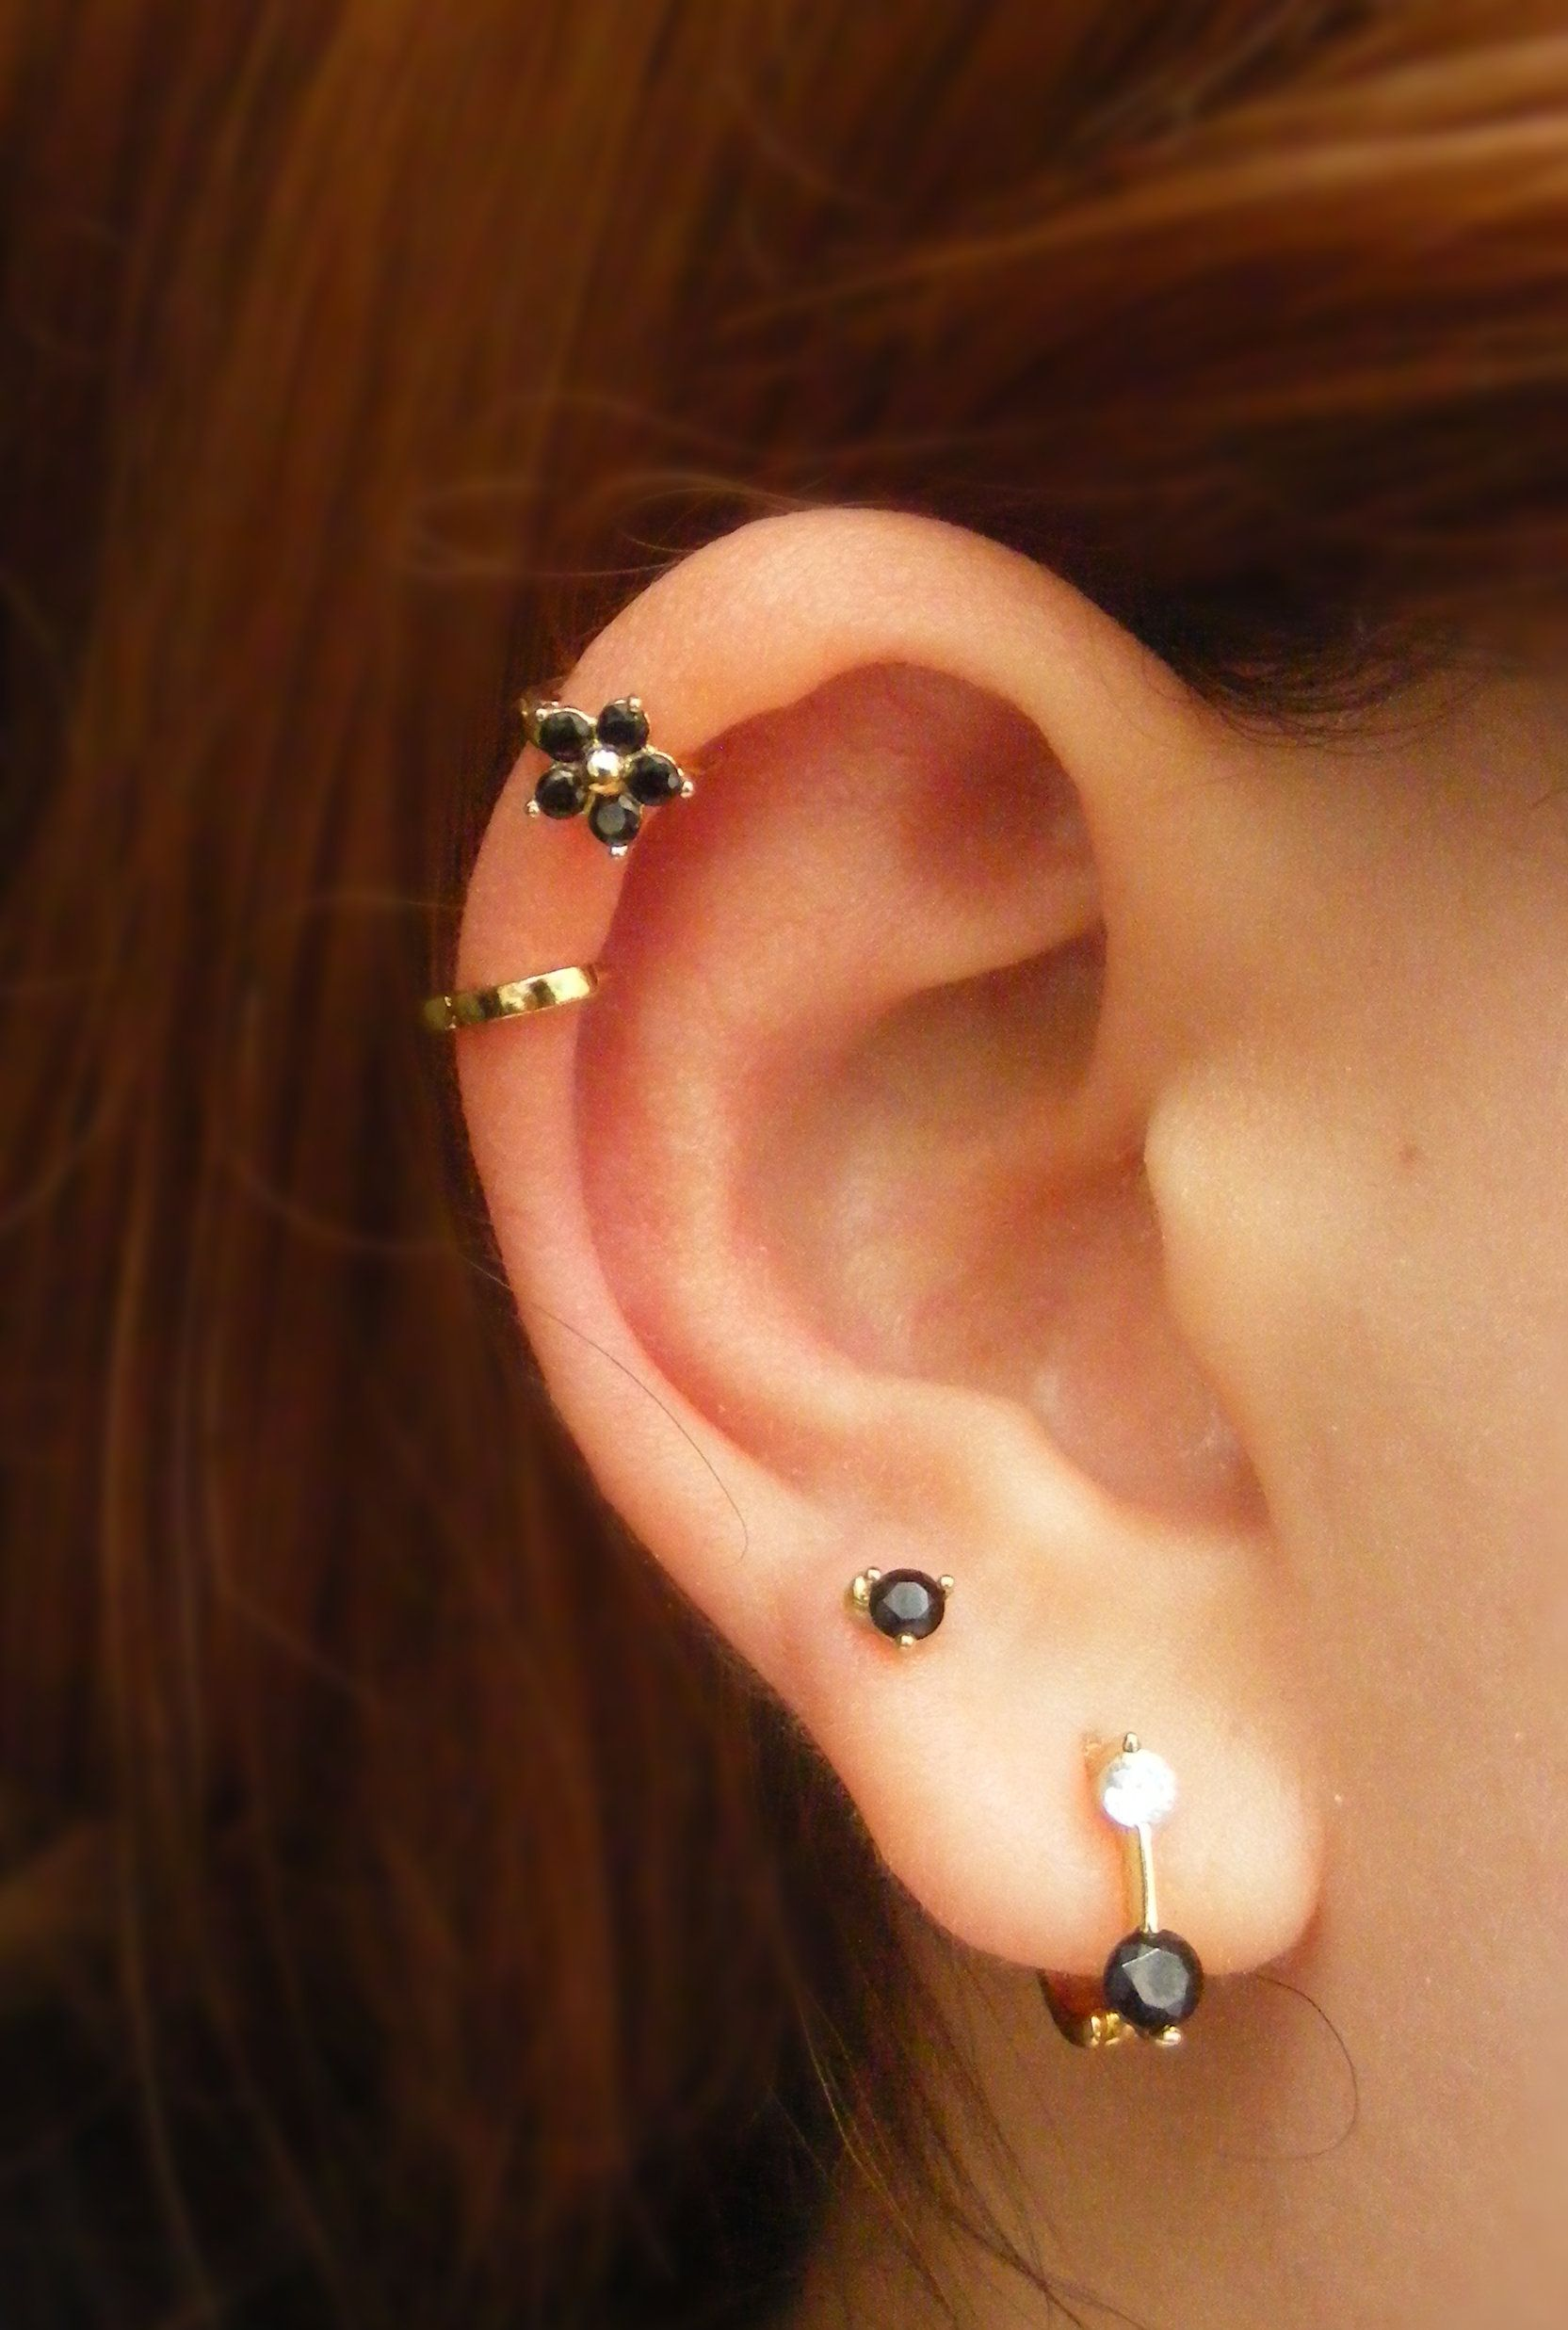 Bump after piercing  Pin by Erica on Piercing ideas  Pinterest  Top ear piercing